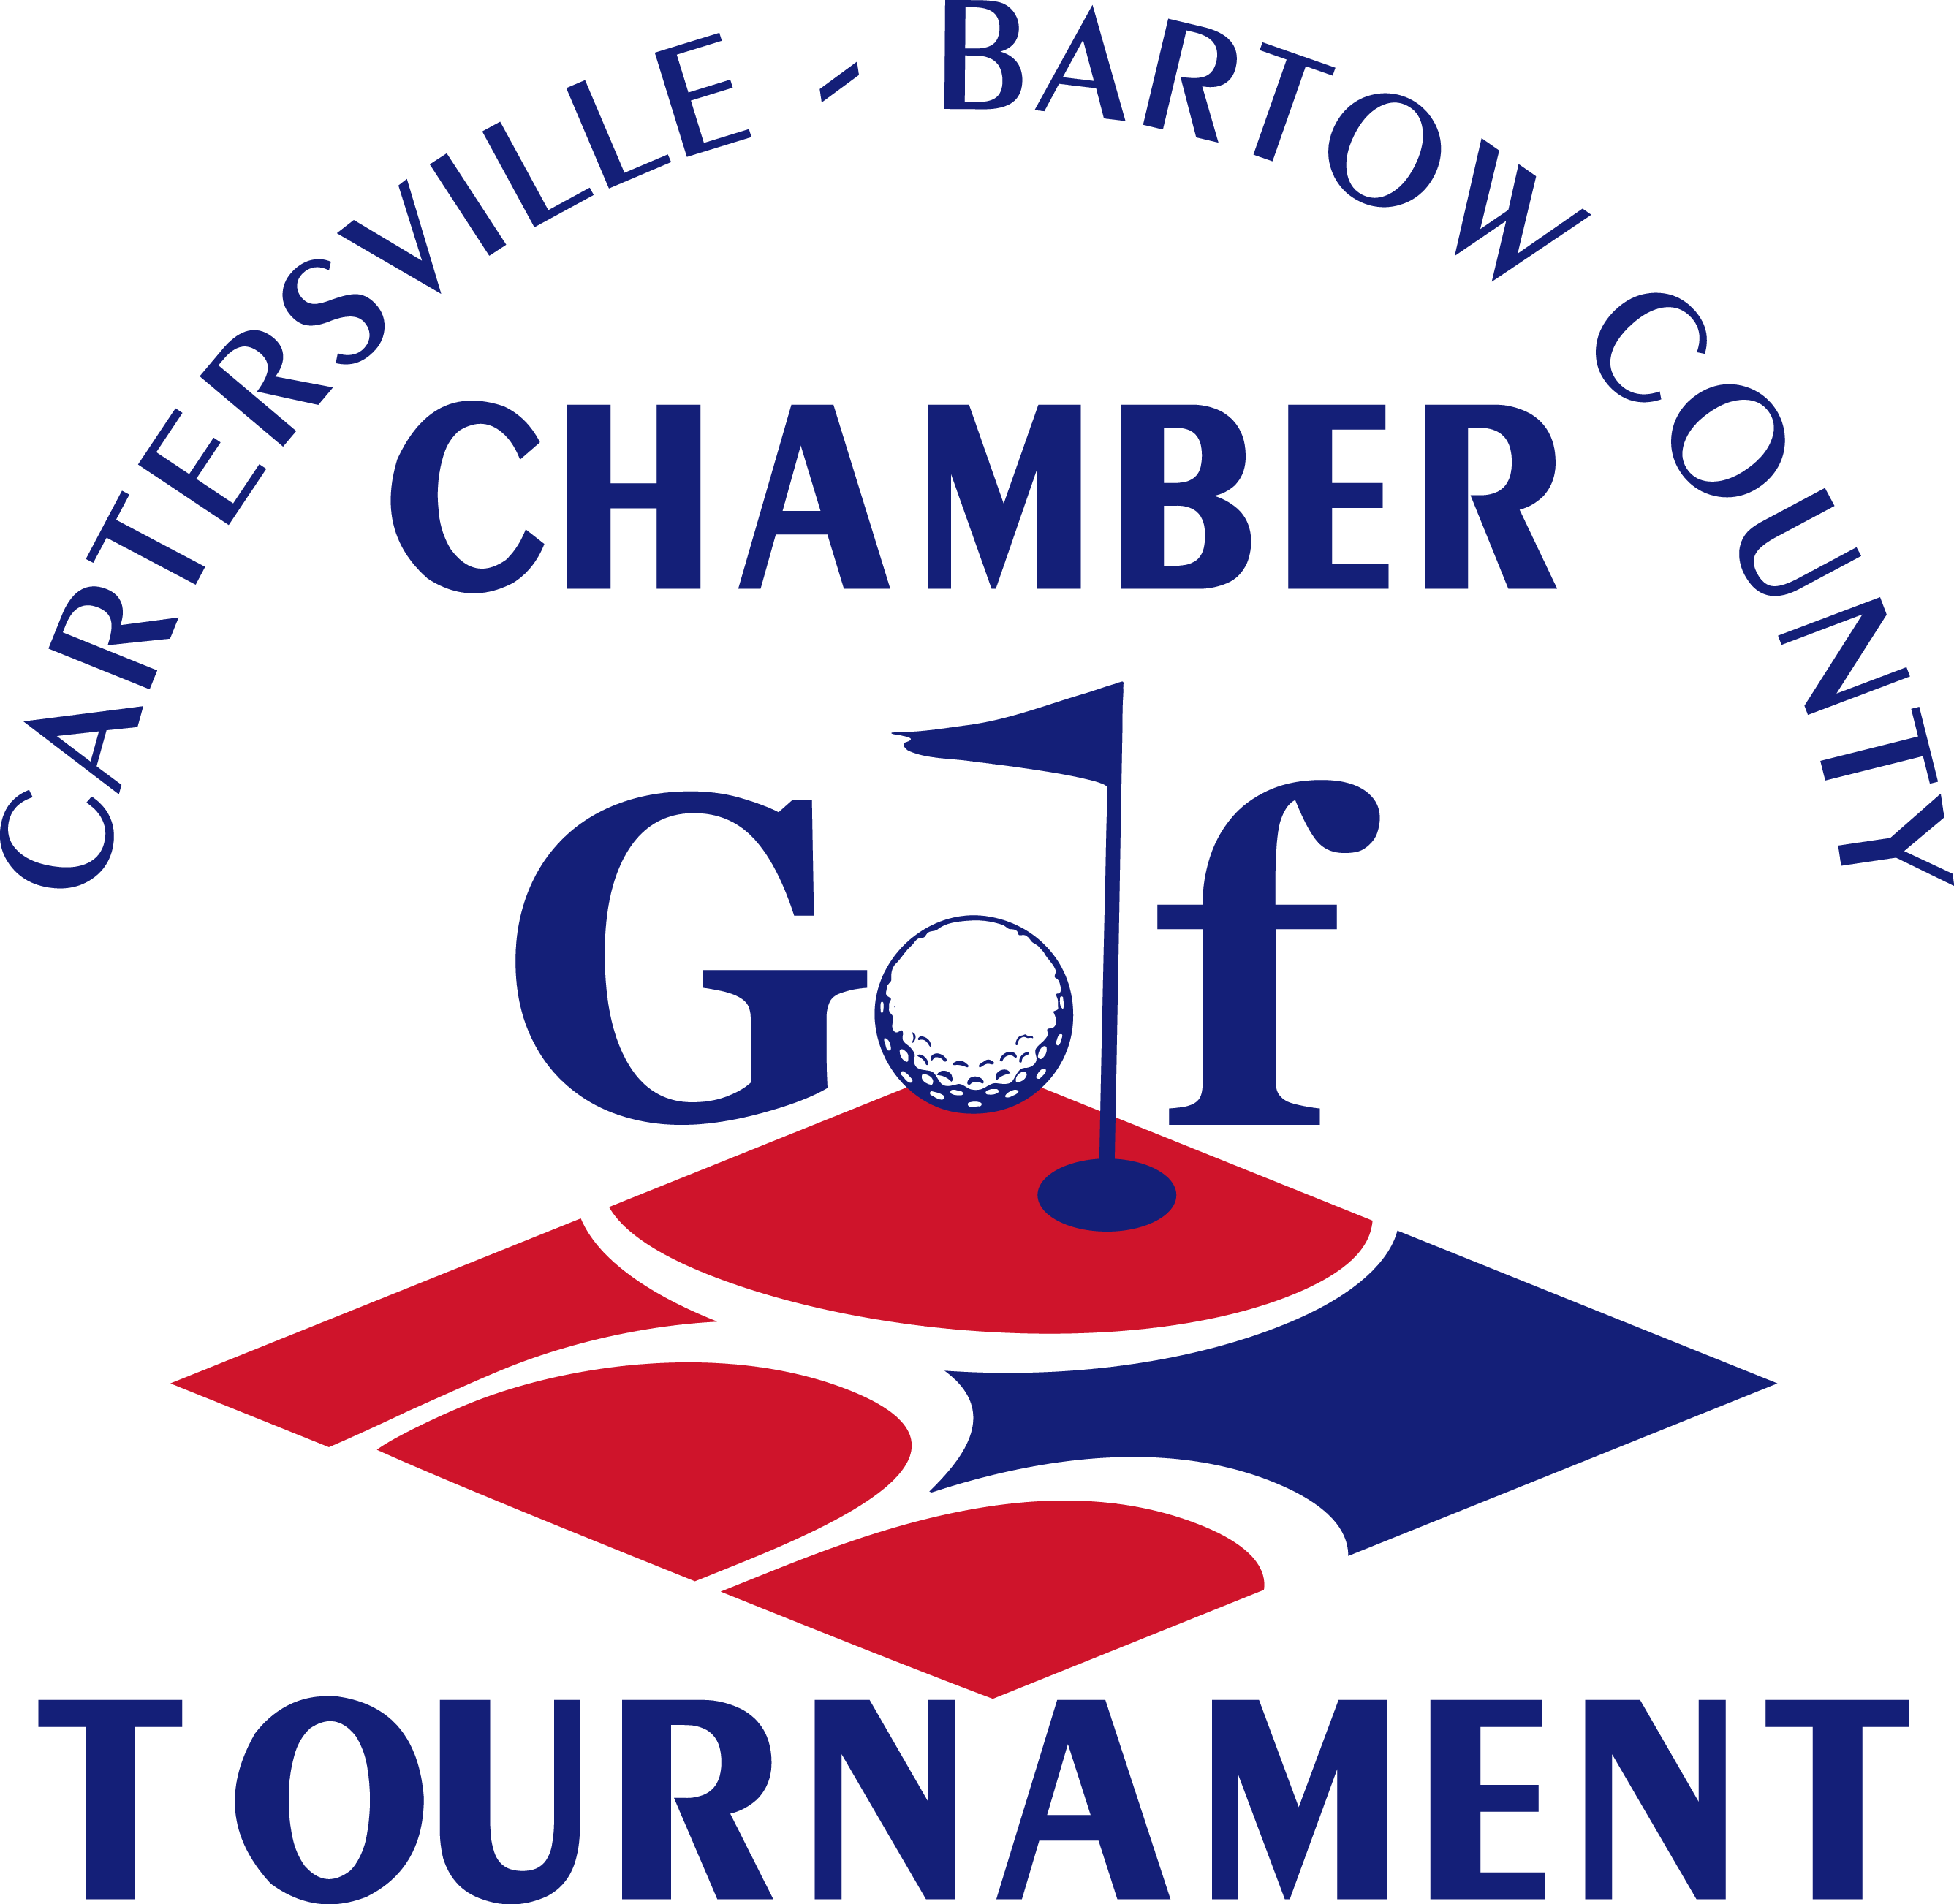 Cartersville-Bartow County Chamber Golf Tournament